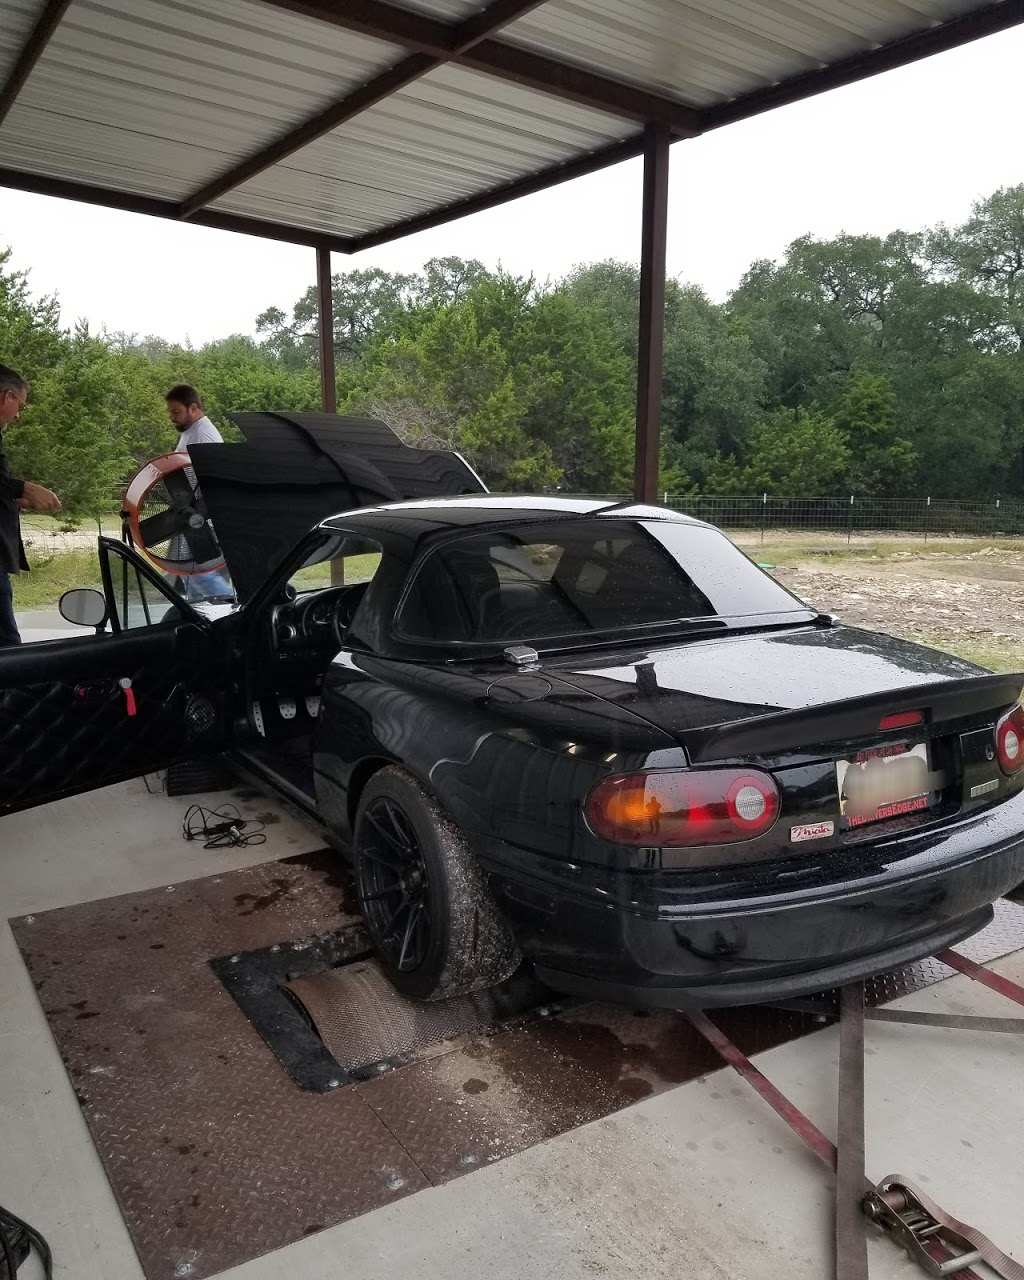 Bell Tuning & Performance - car repair  | Photo 9 of 10 | Address: 7200 US-281 #1, Spring Branch, TX 78070, USA | Phone: (830) 481-1755